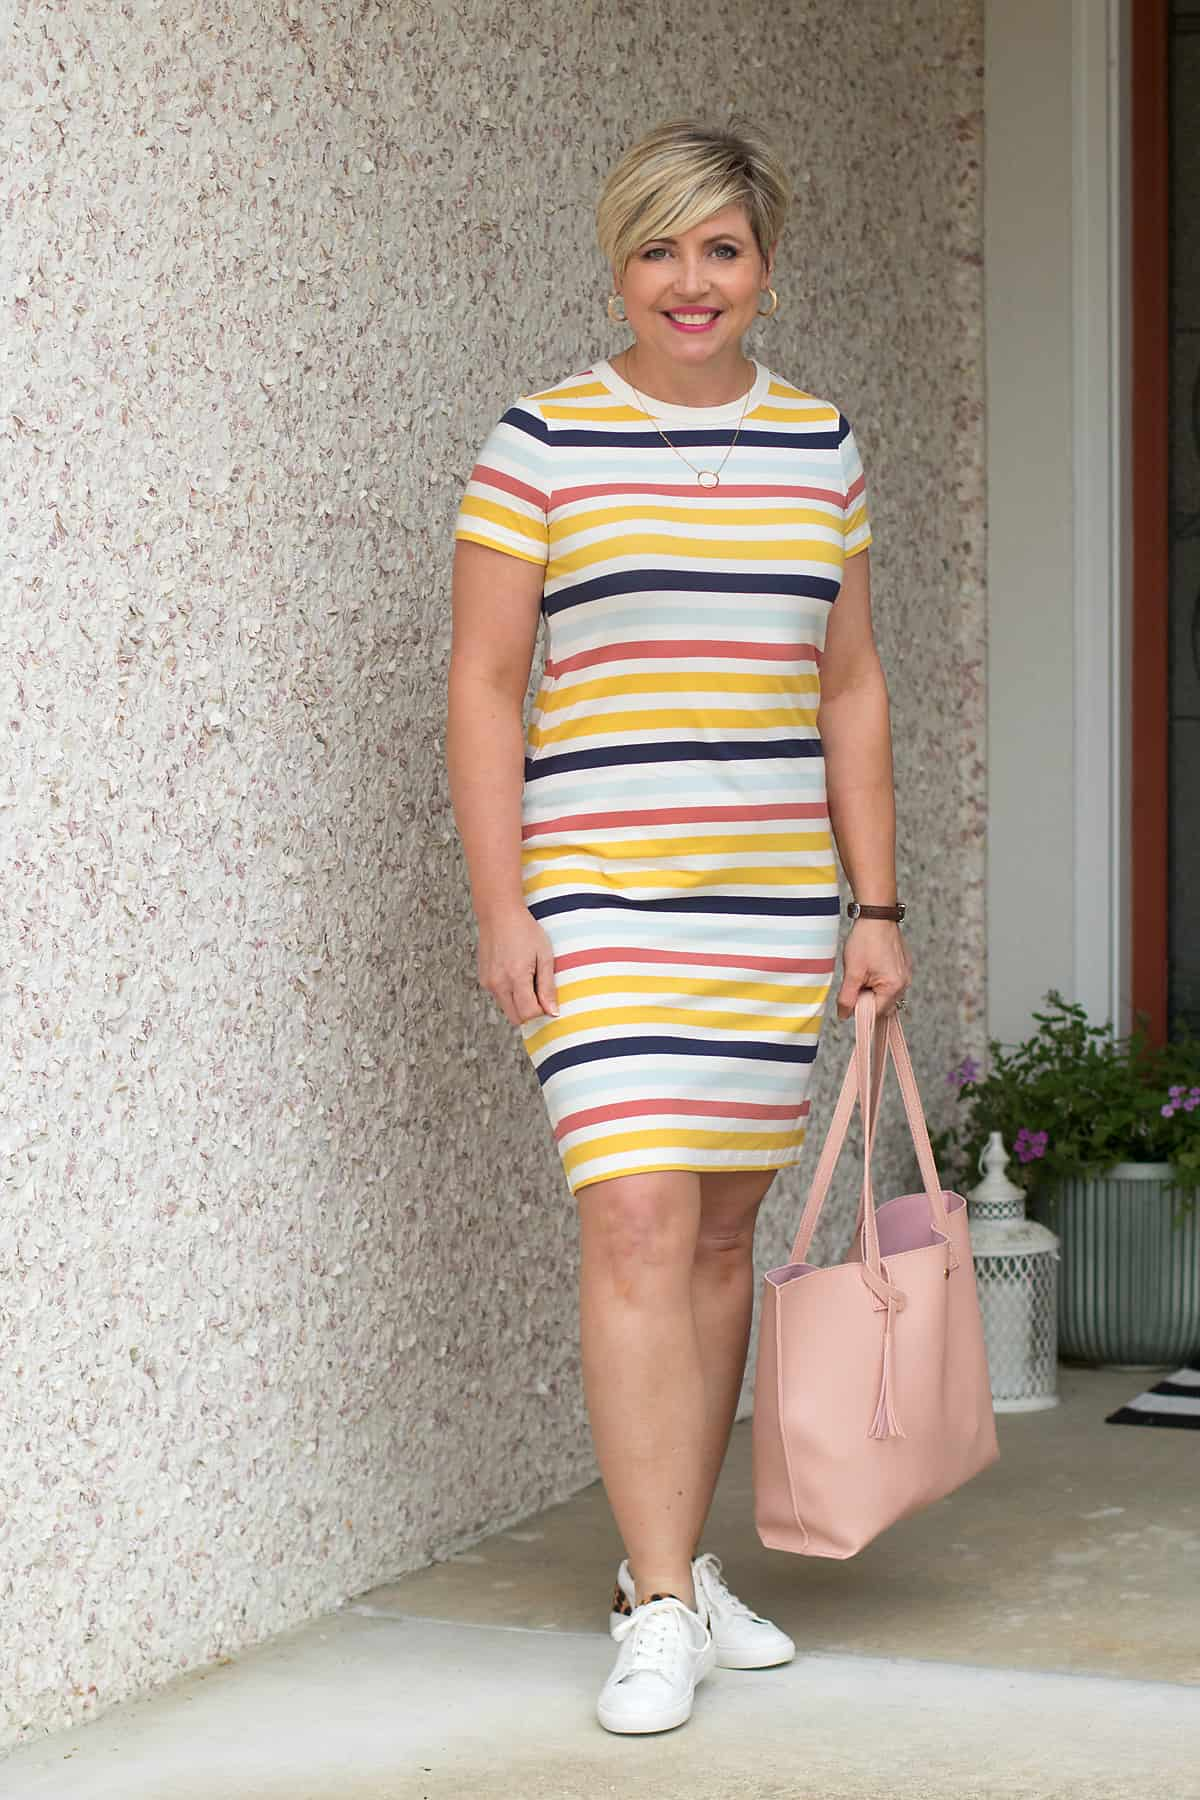 women's striped tshirt dress with sneakers outfit